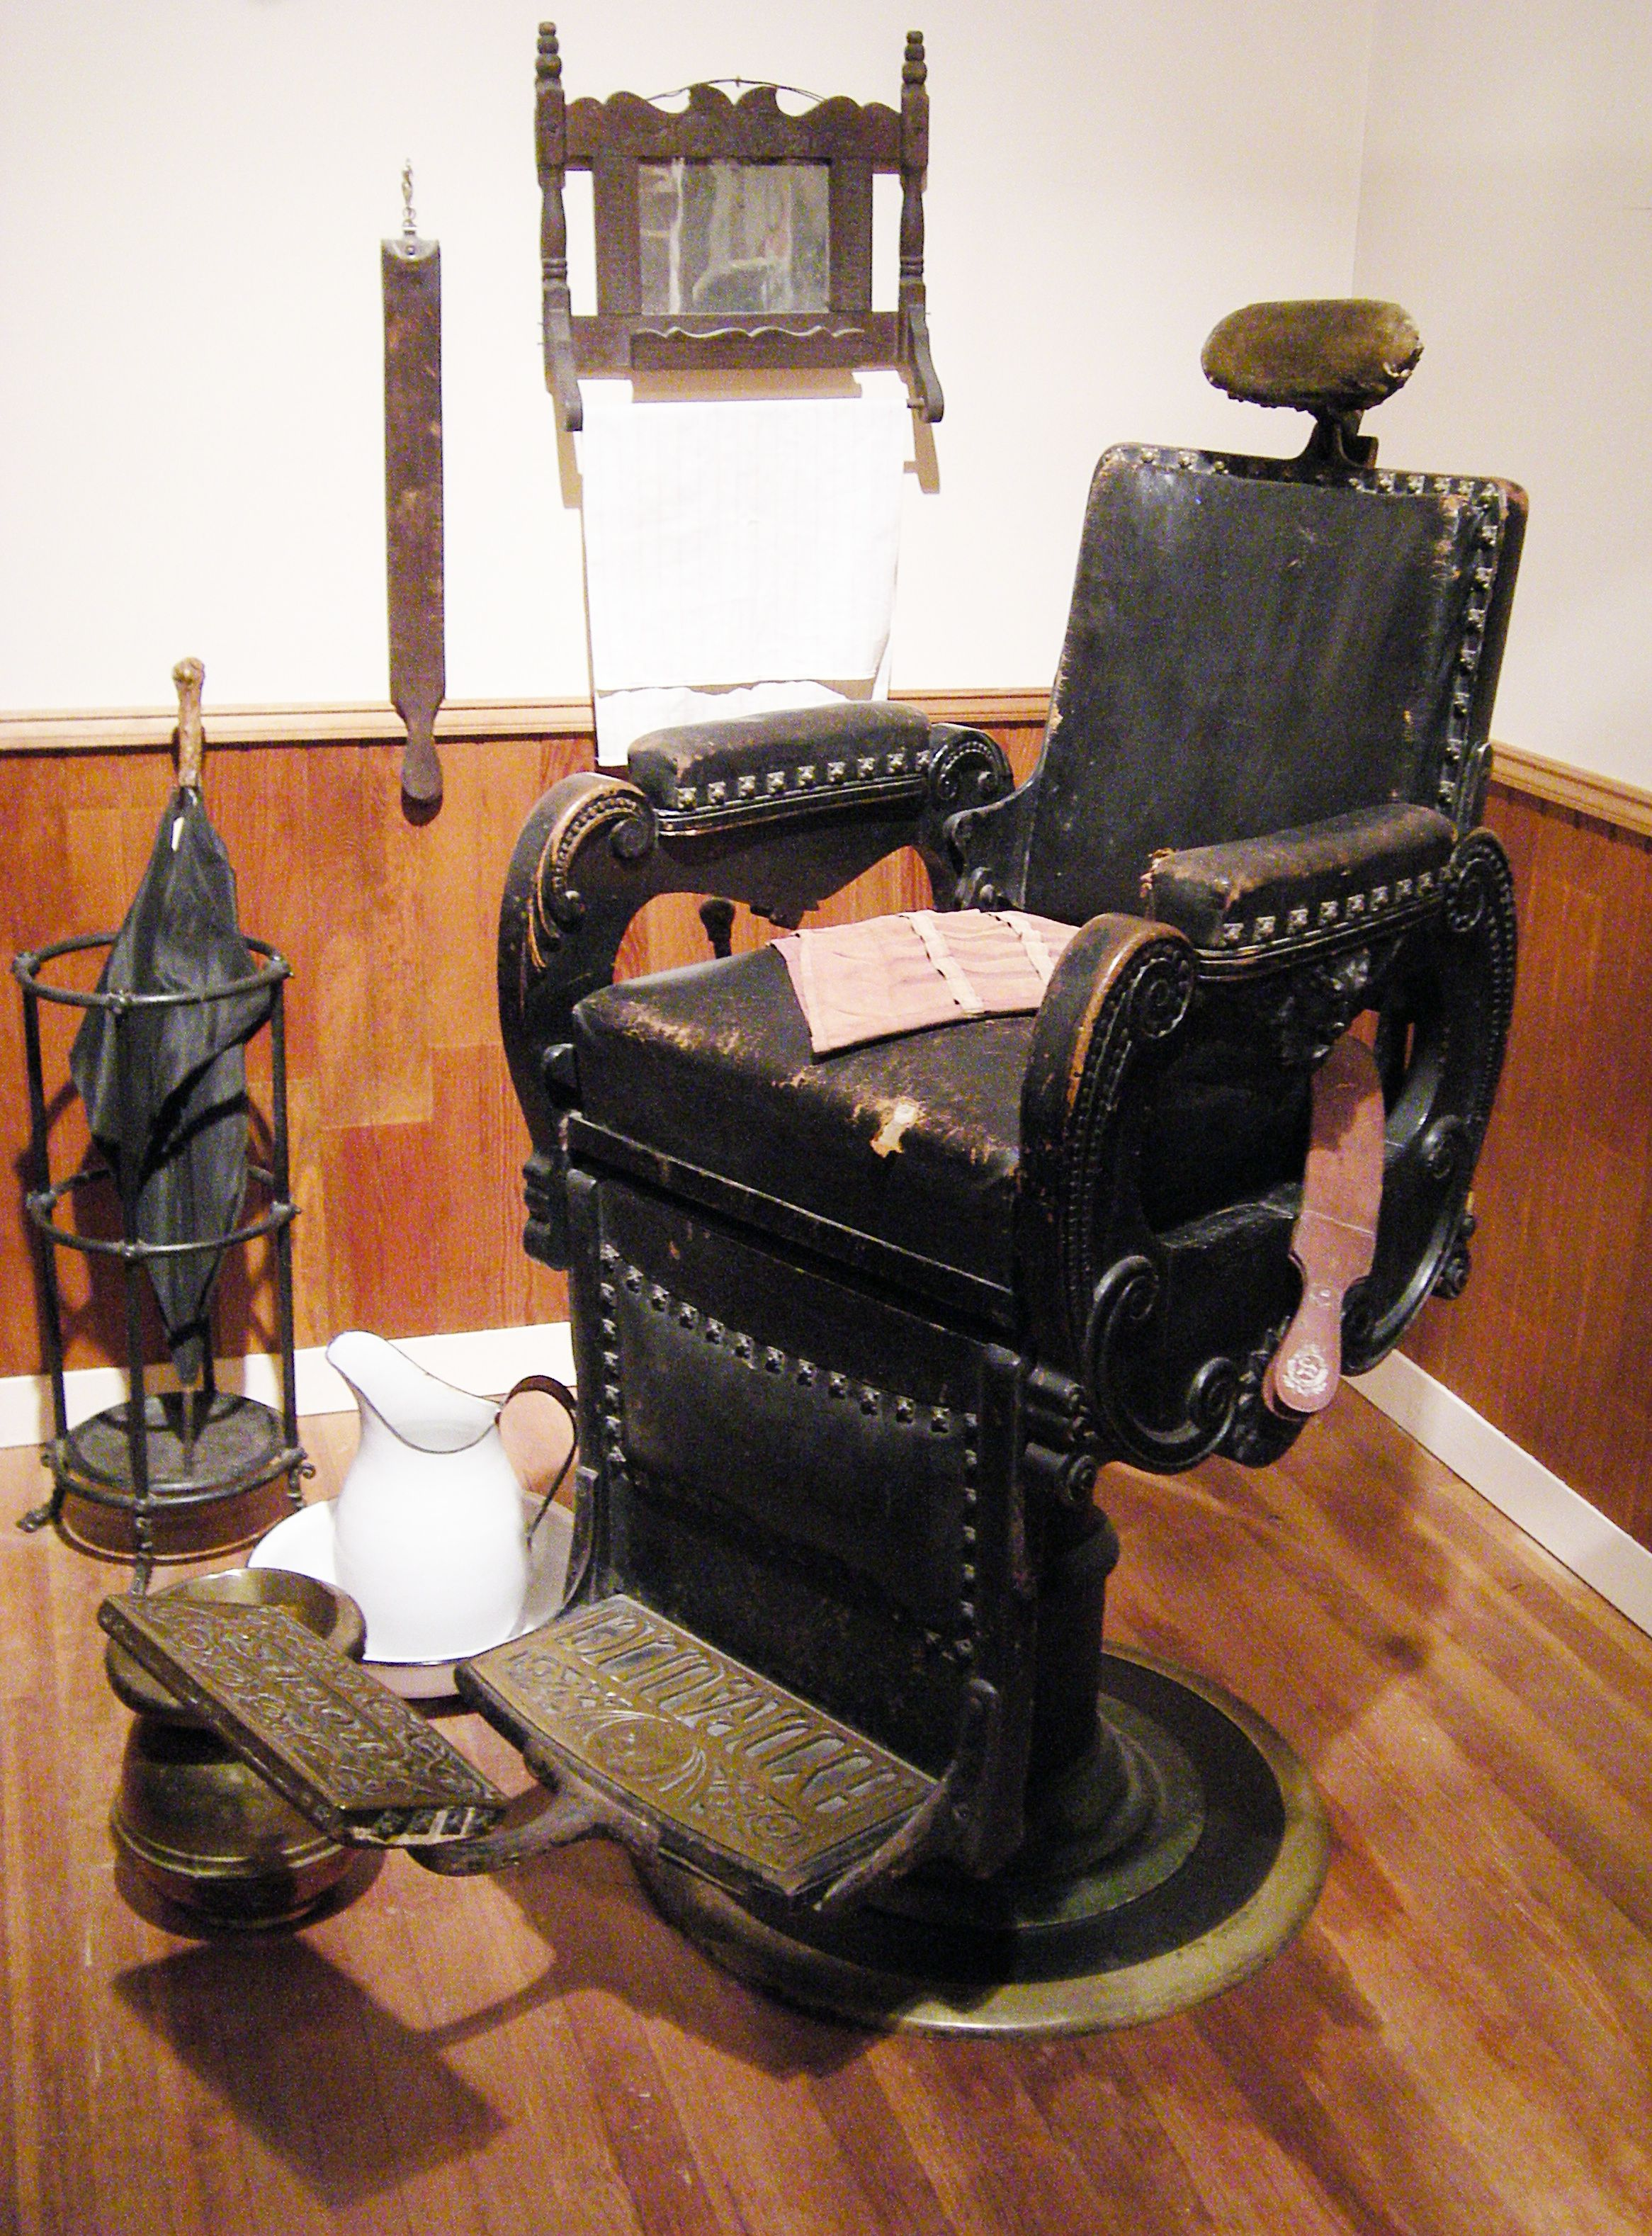 Mobile Barber Chair Antique Cast Iron Garden Chairs Vintage Shave And A Haircut Pinterest